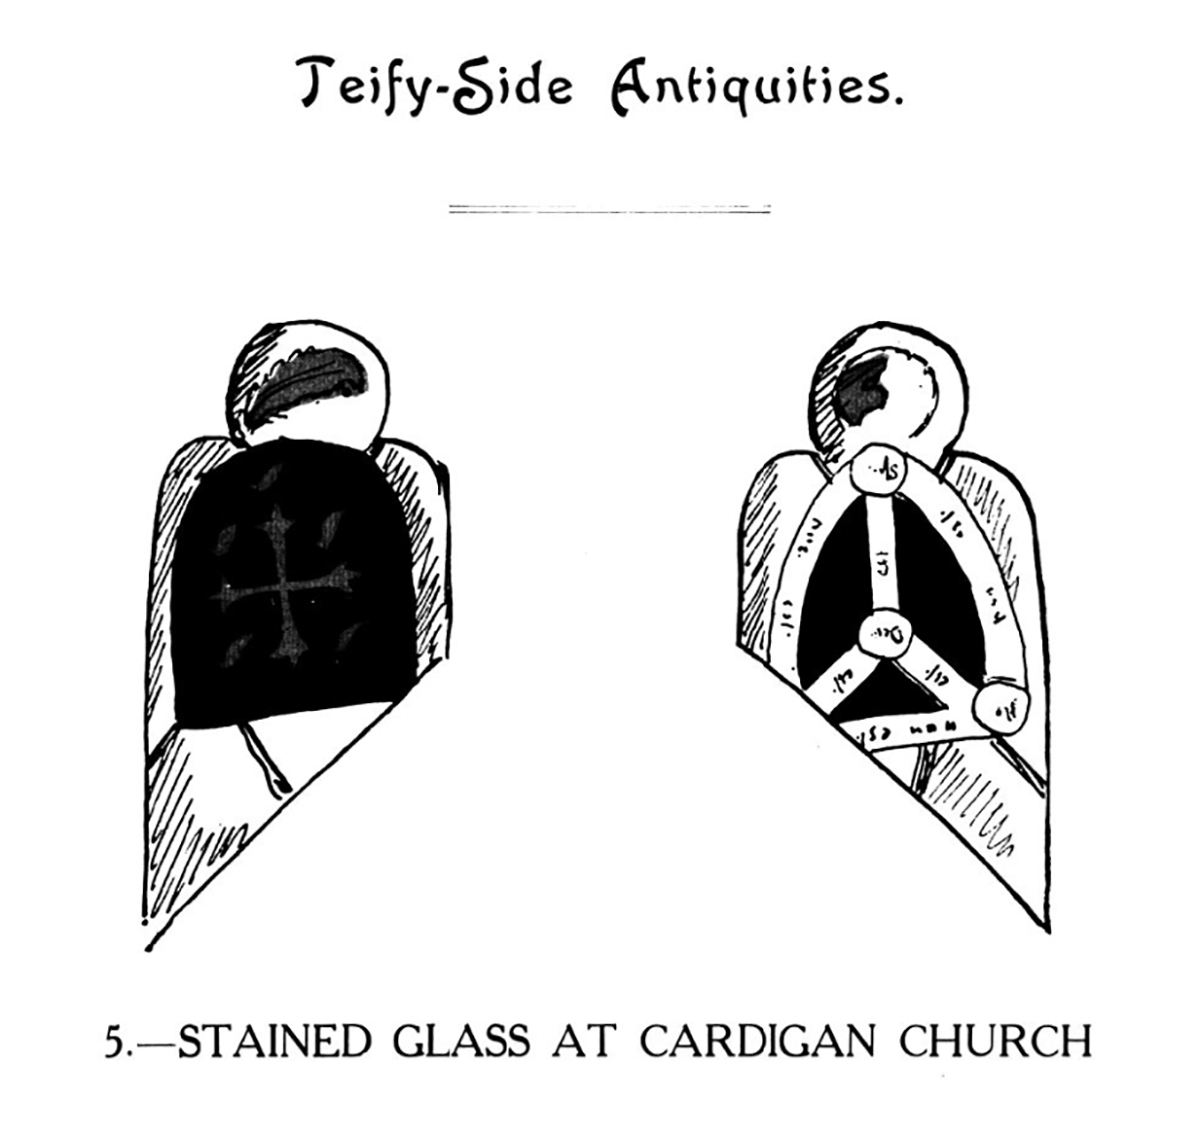 Teify-Side Antiquities - Stained Glass at Cardigan Church